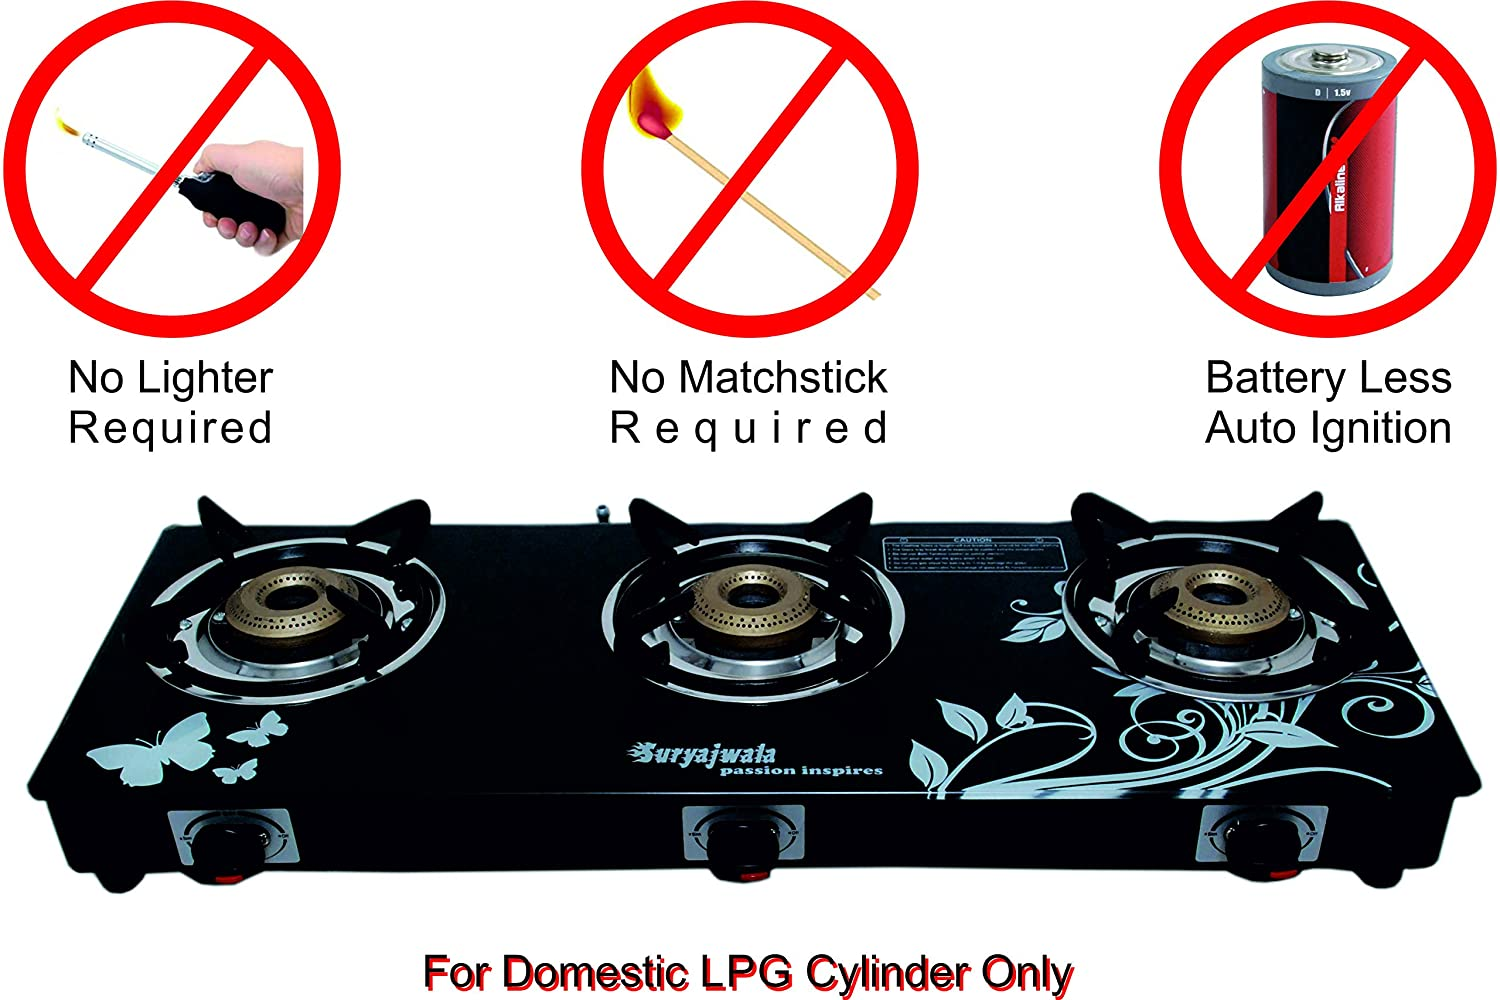 Suryajwala Auto Ignition Royal Designer Cast Iron 3 Burner Gas Stove